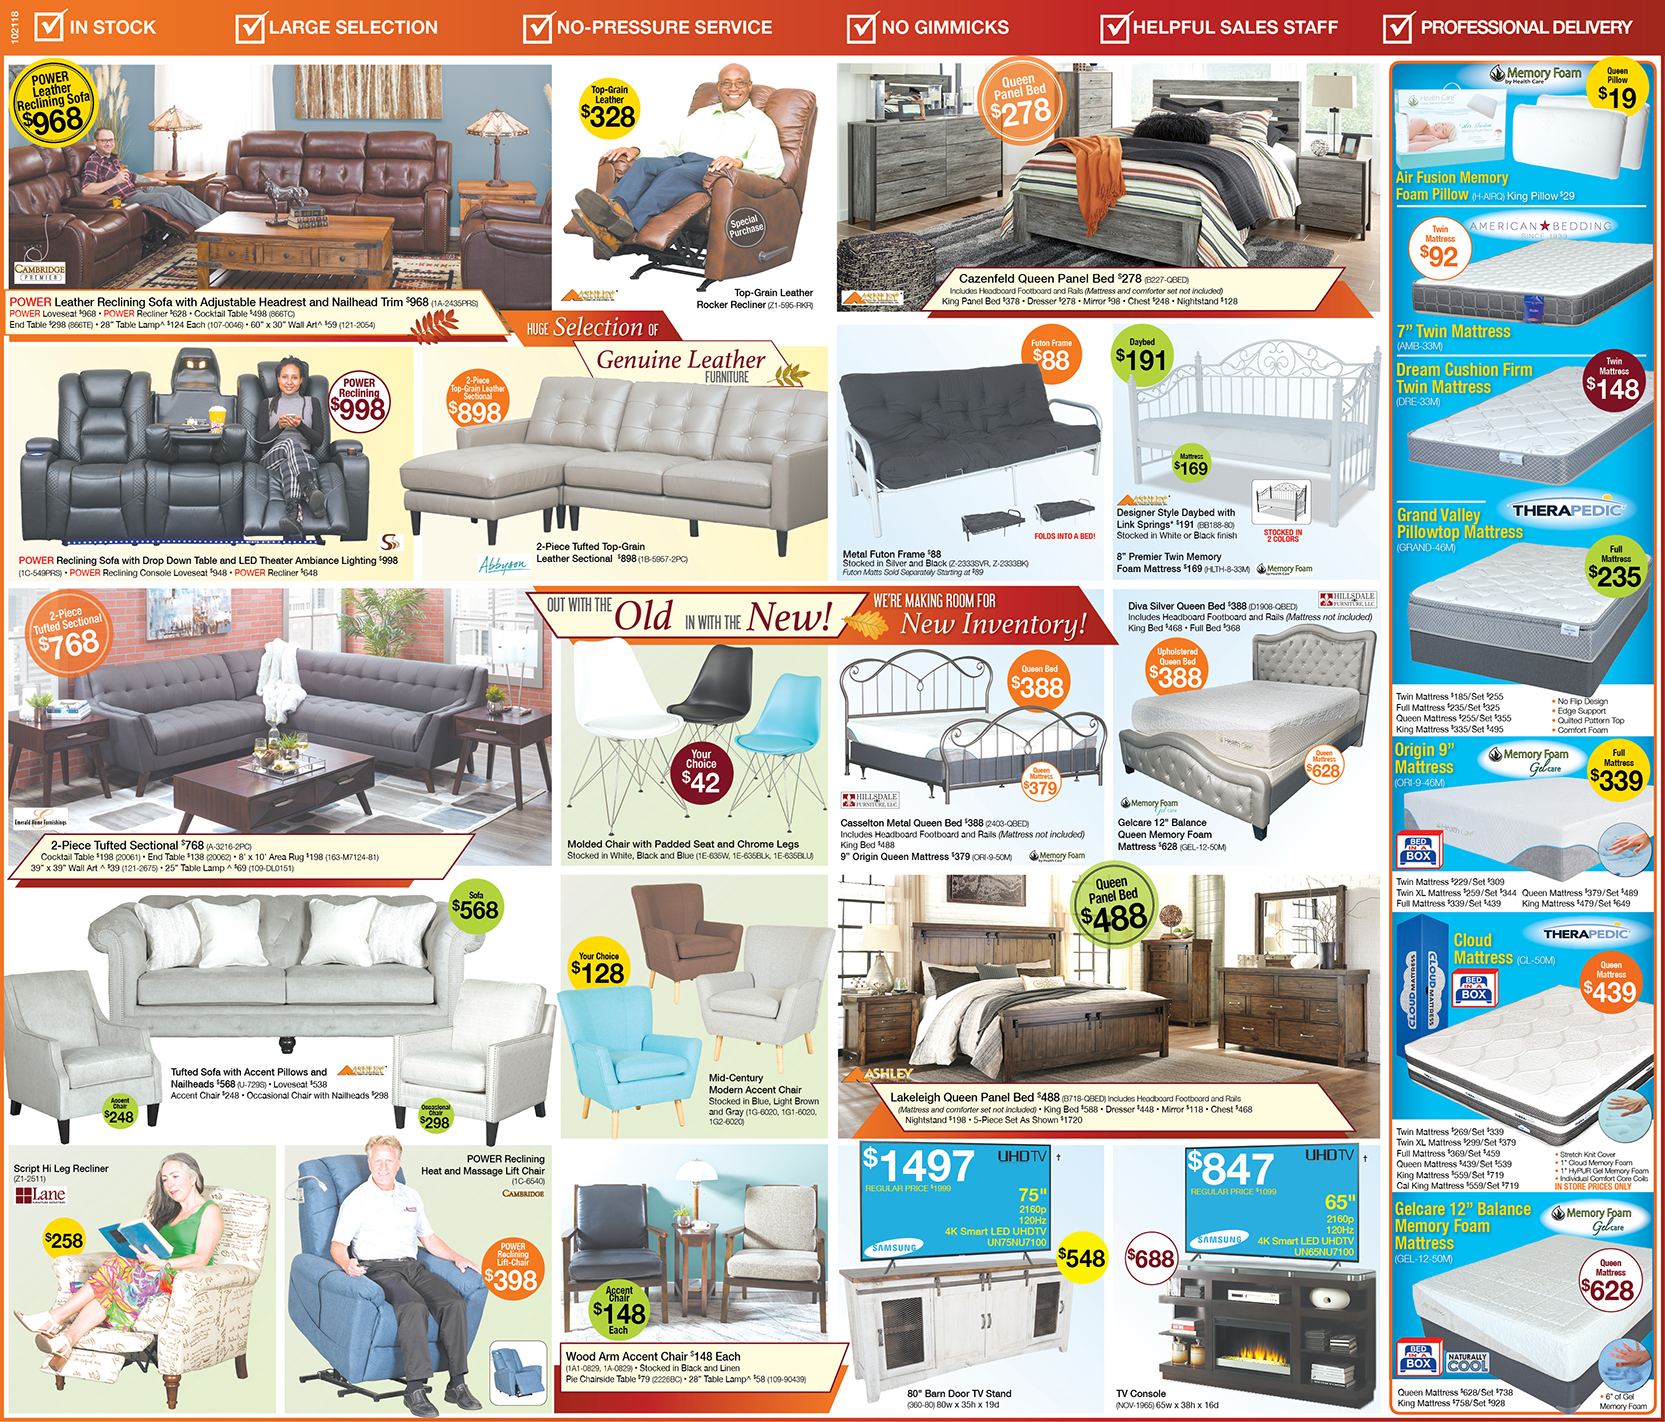 Fall Clearance Event Savings Ad for Sleeper Sofas, Beds, Patio Furniture & More | Best Prices on living room furniture